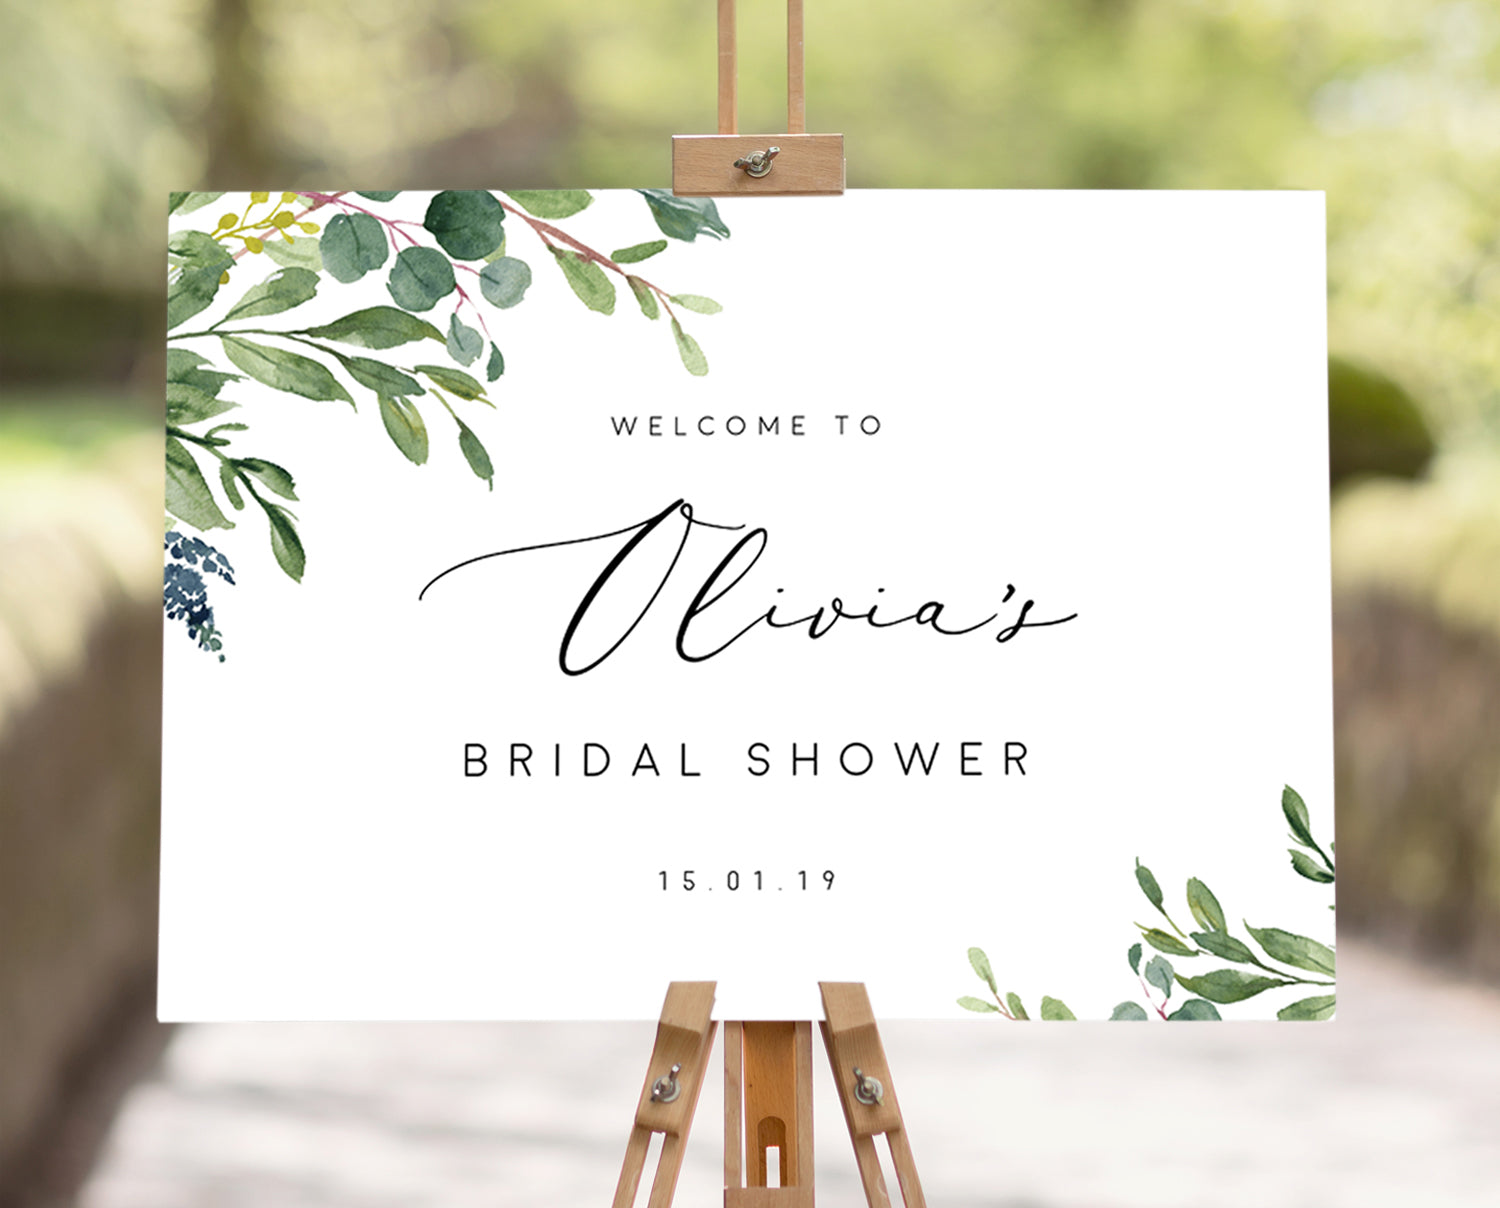 It's just a photo of Printable Bridal Shower Signs intended for cursive